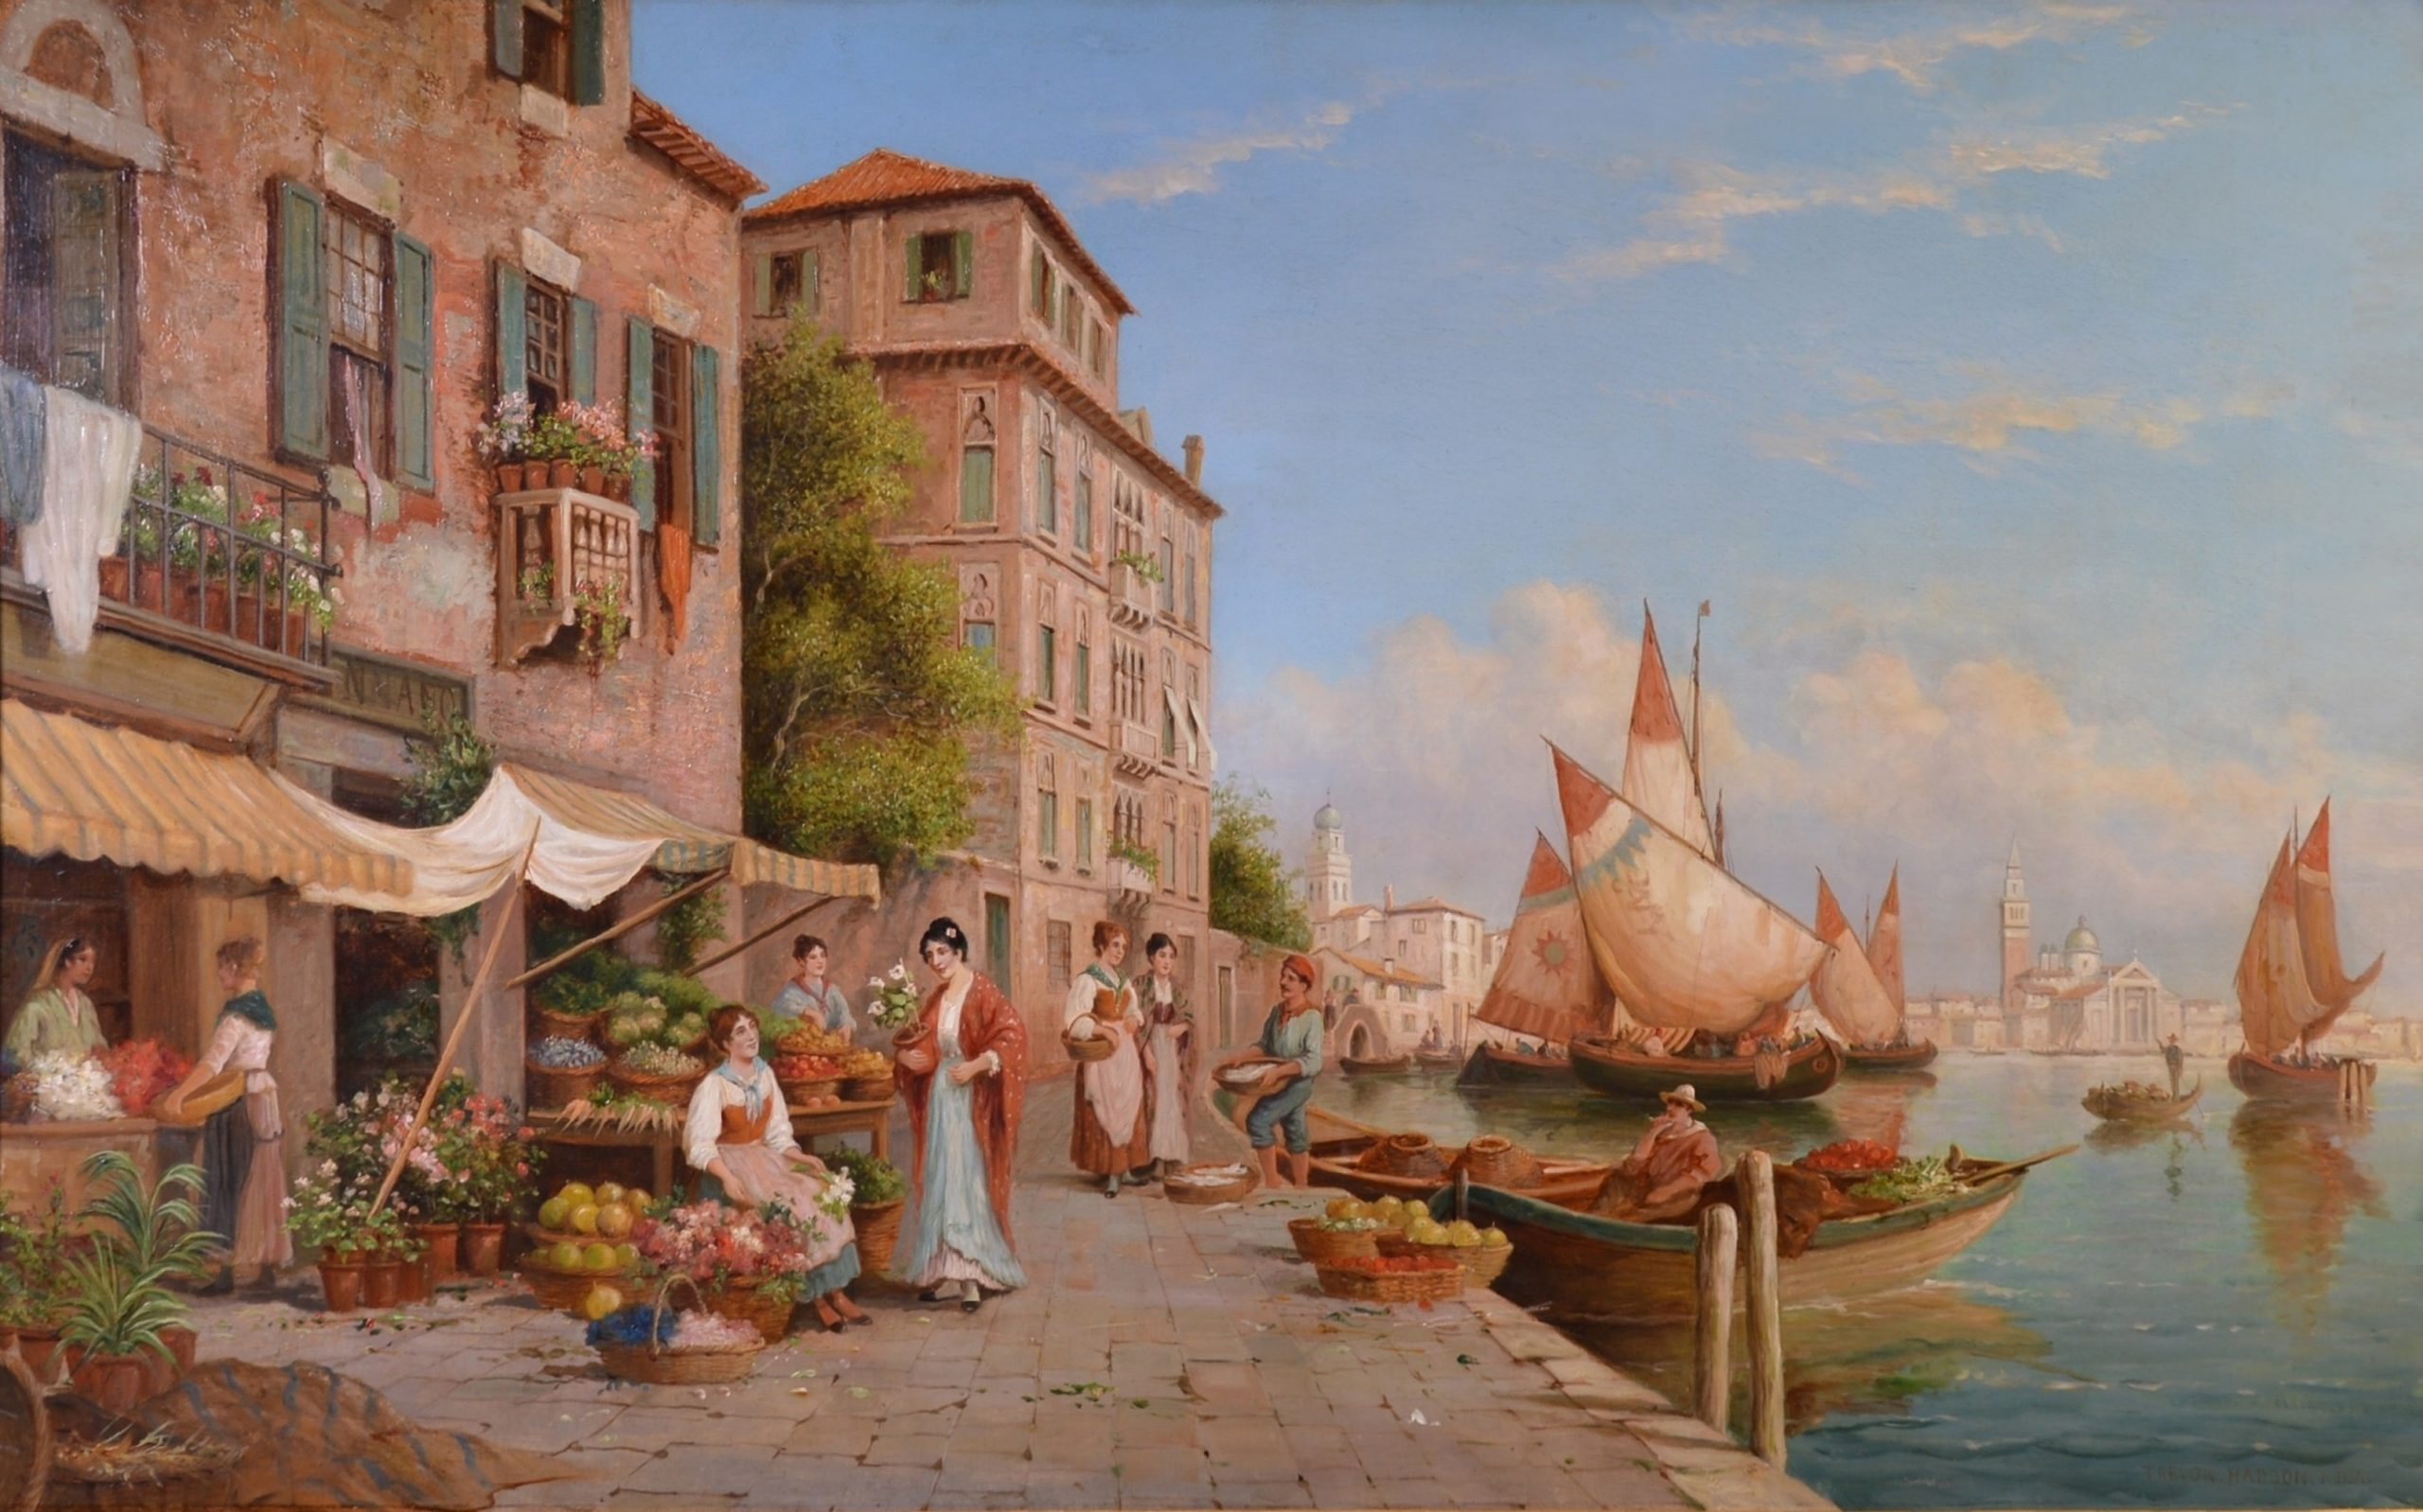 St. Mark's from the Giudecca - Very Large 19th Century Venice Landscape Oil Painting Image